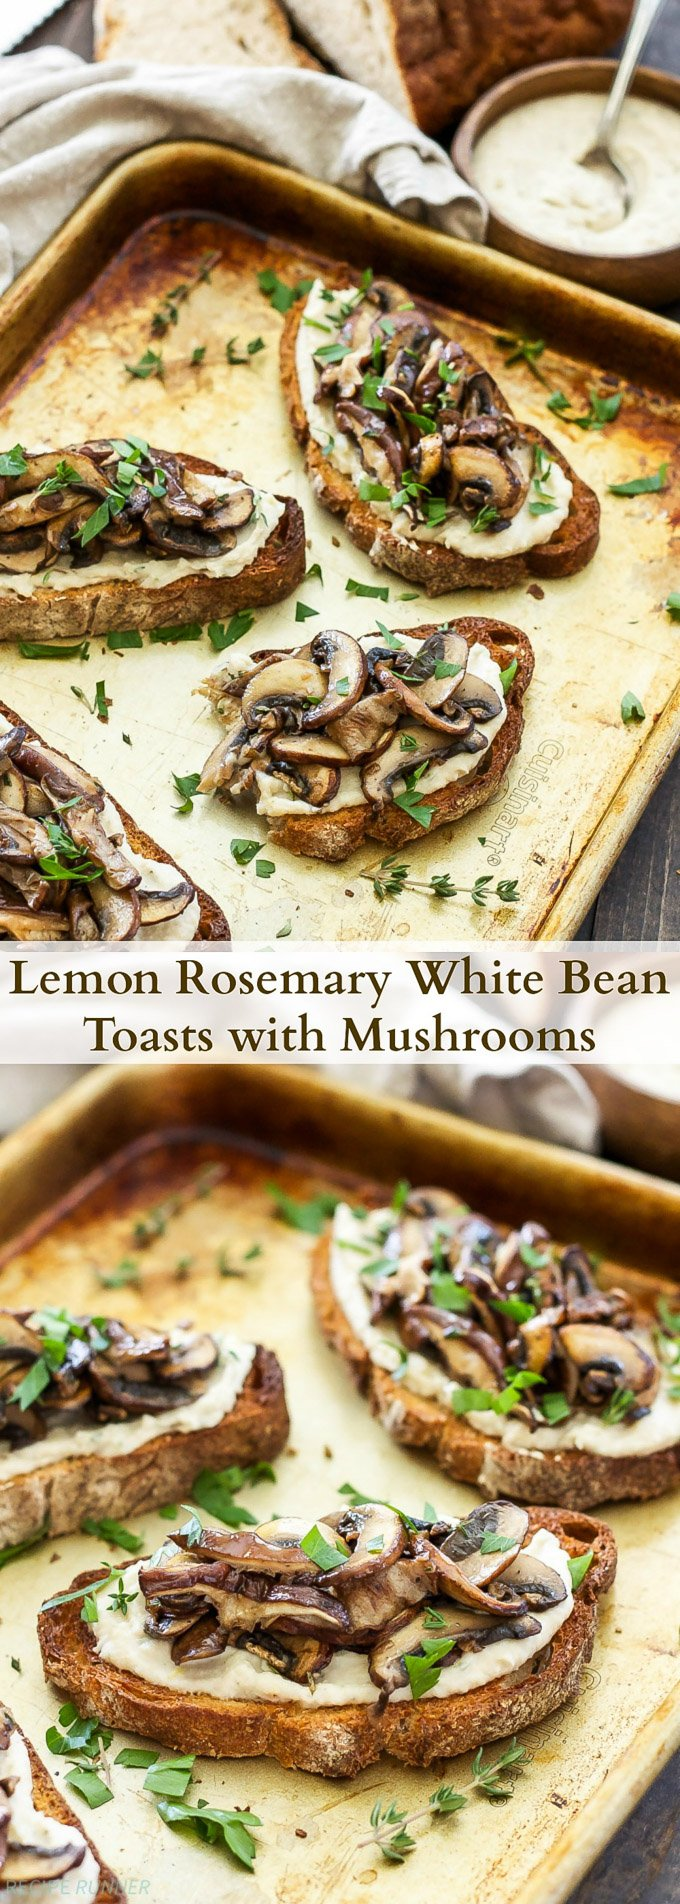 Lemon Rosemary White Bean Toasts with Mushrooms | Creamy white beans spread on crunchy whole grain toast and topped with a sautéed blend of mushrooms. They're great for any meal or an afternoon snack!